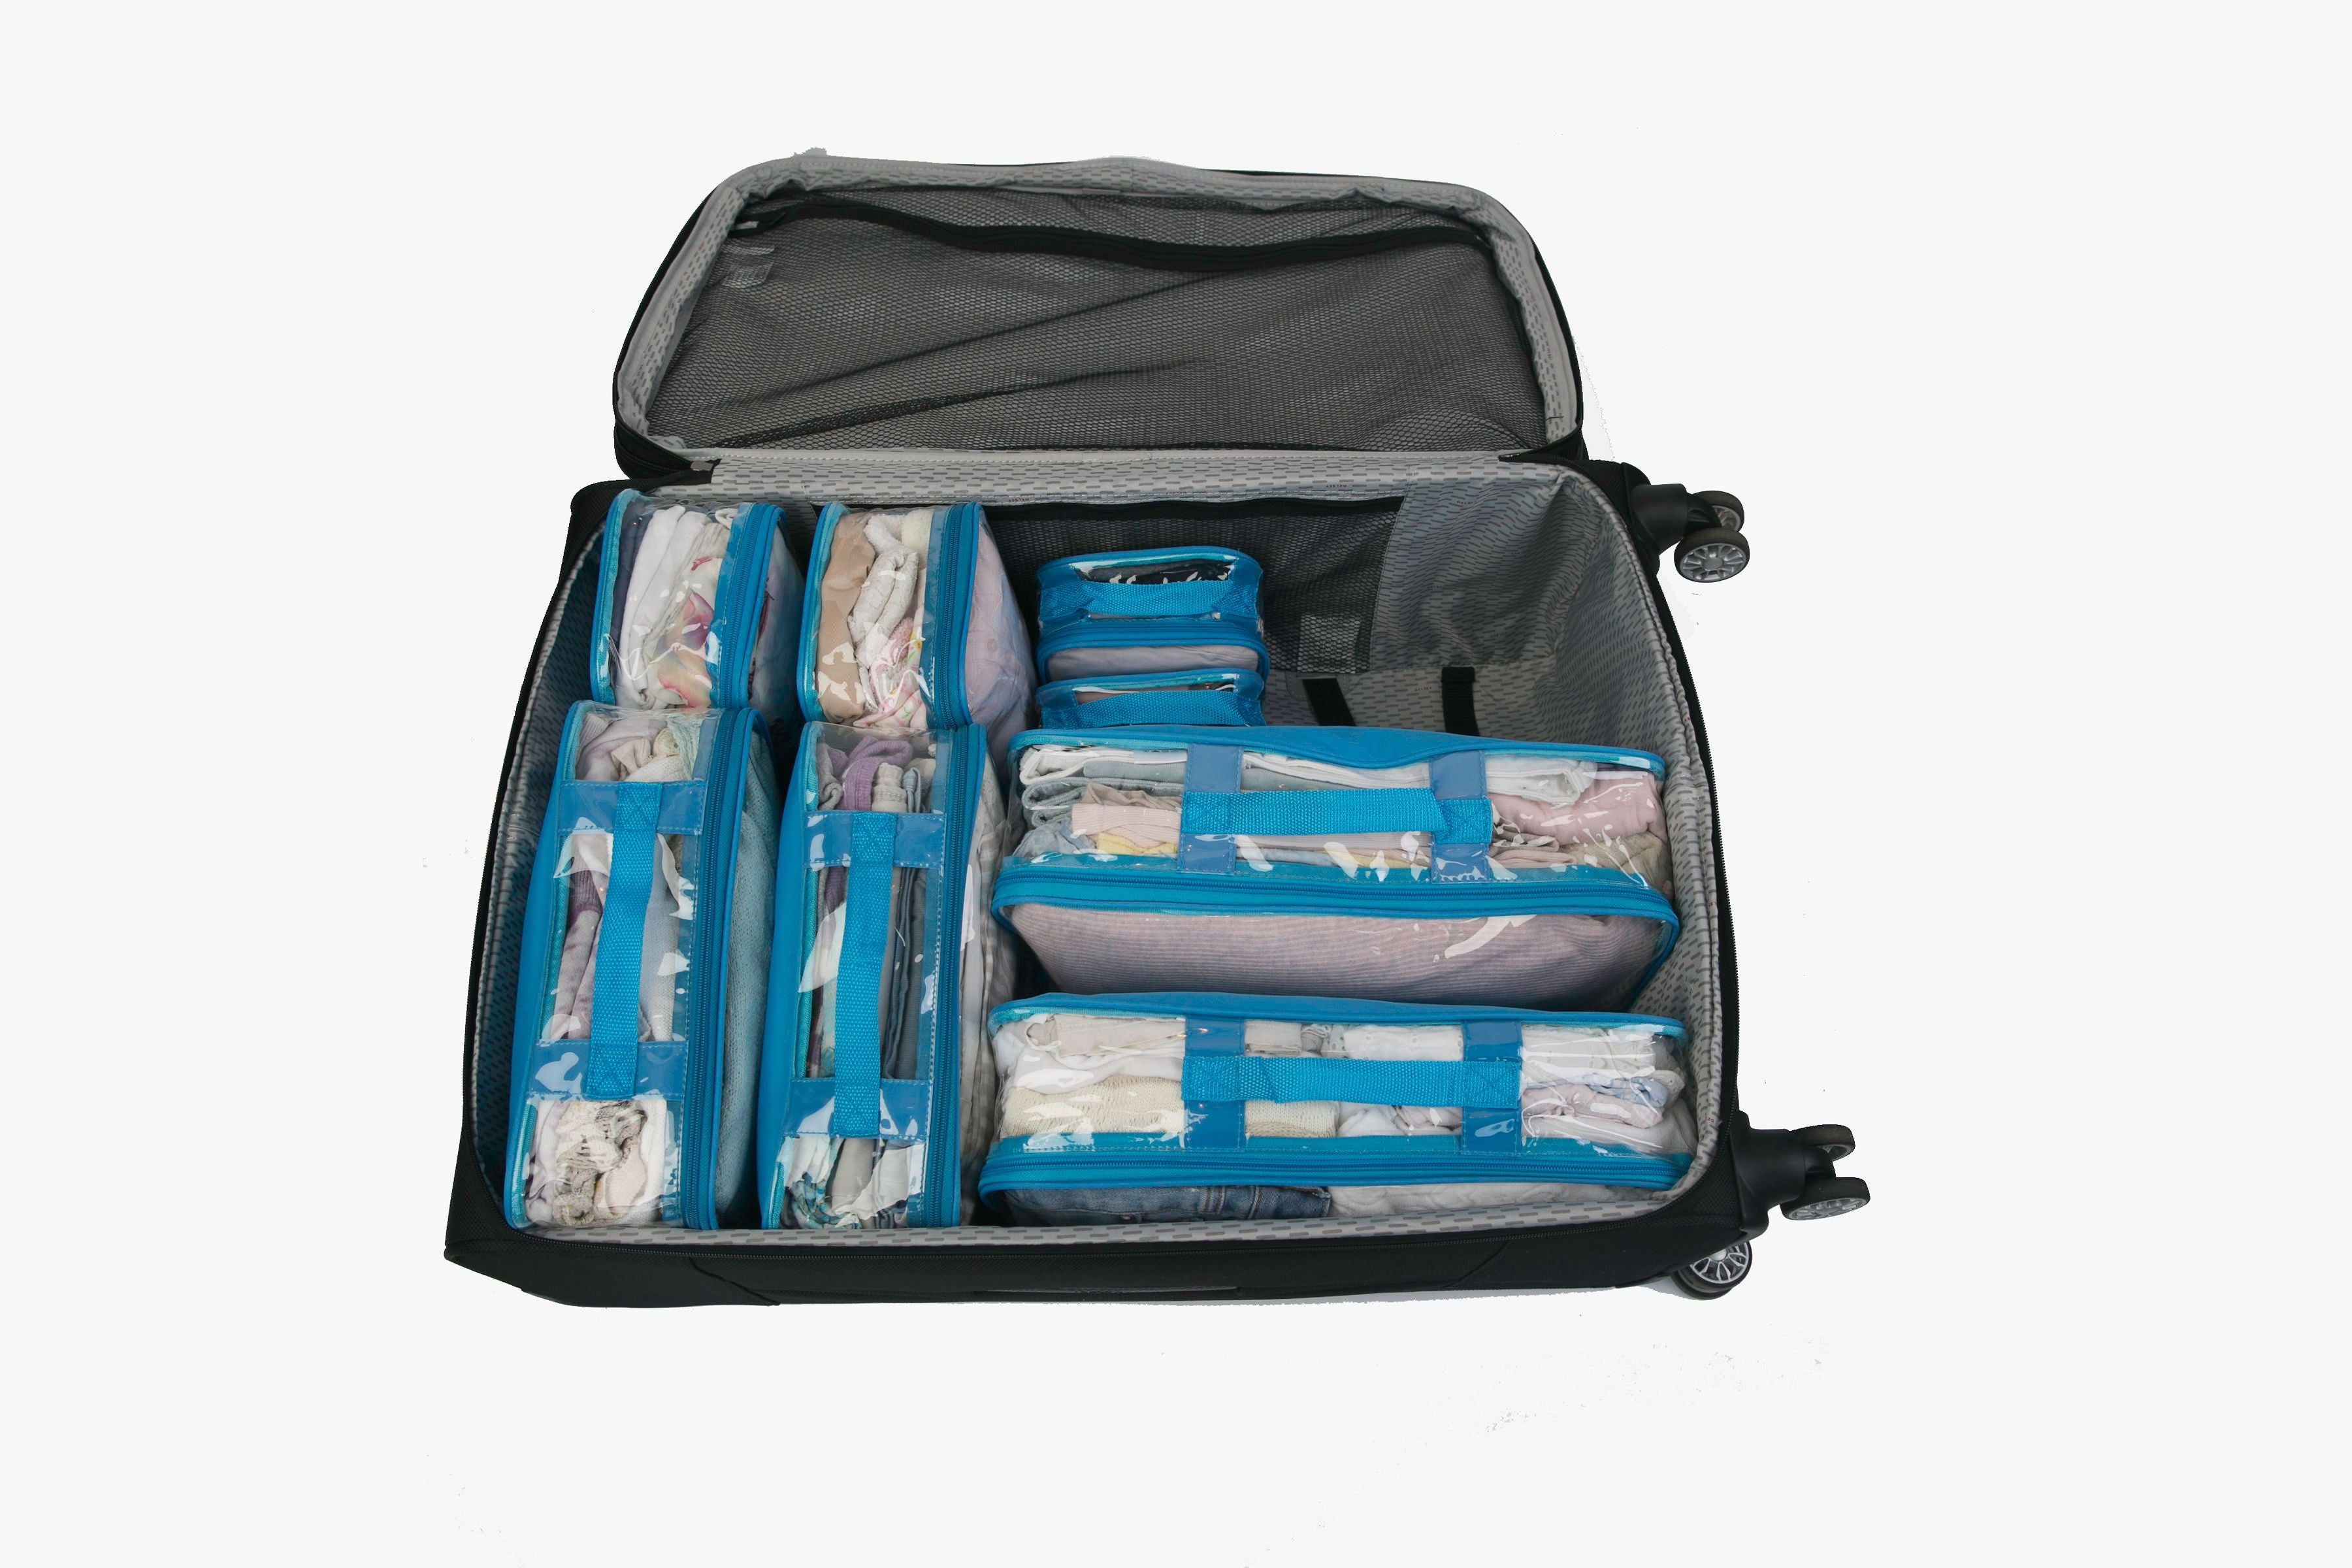 Suitcase with packing cubes